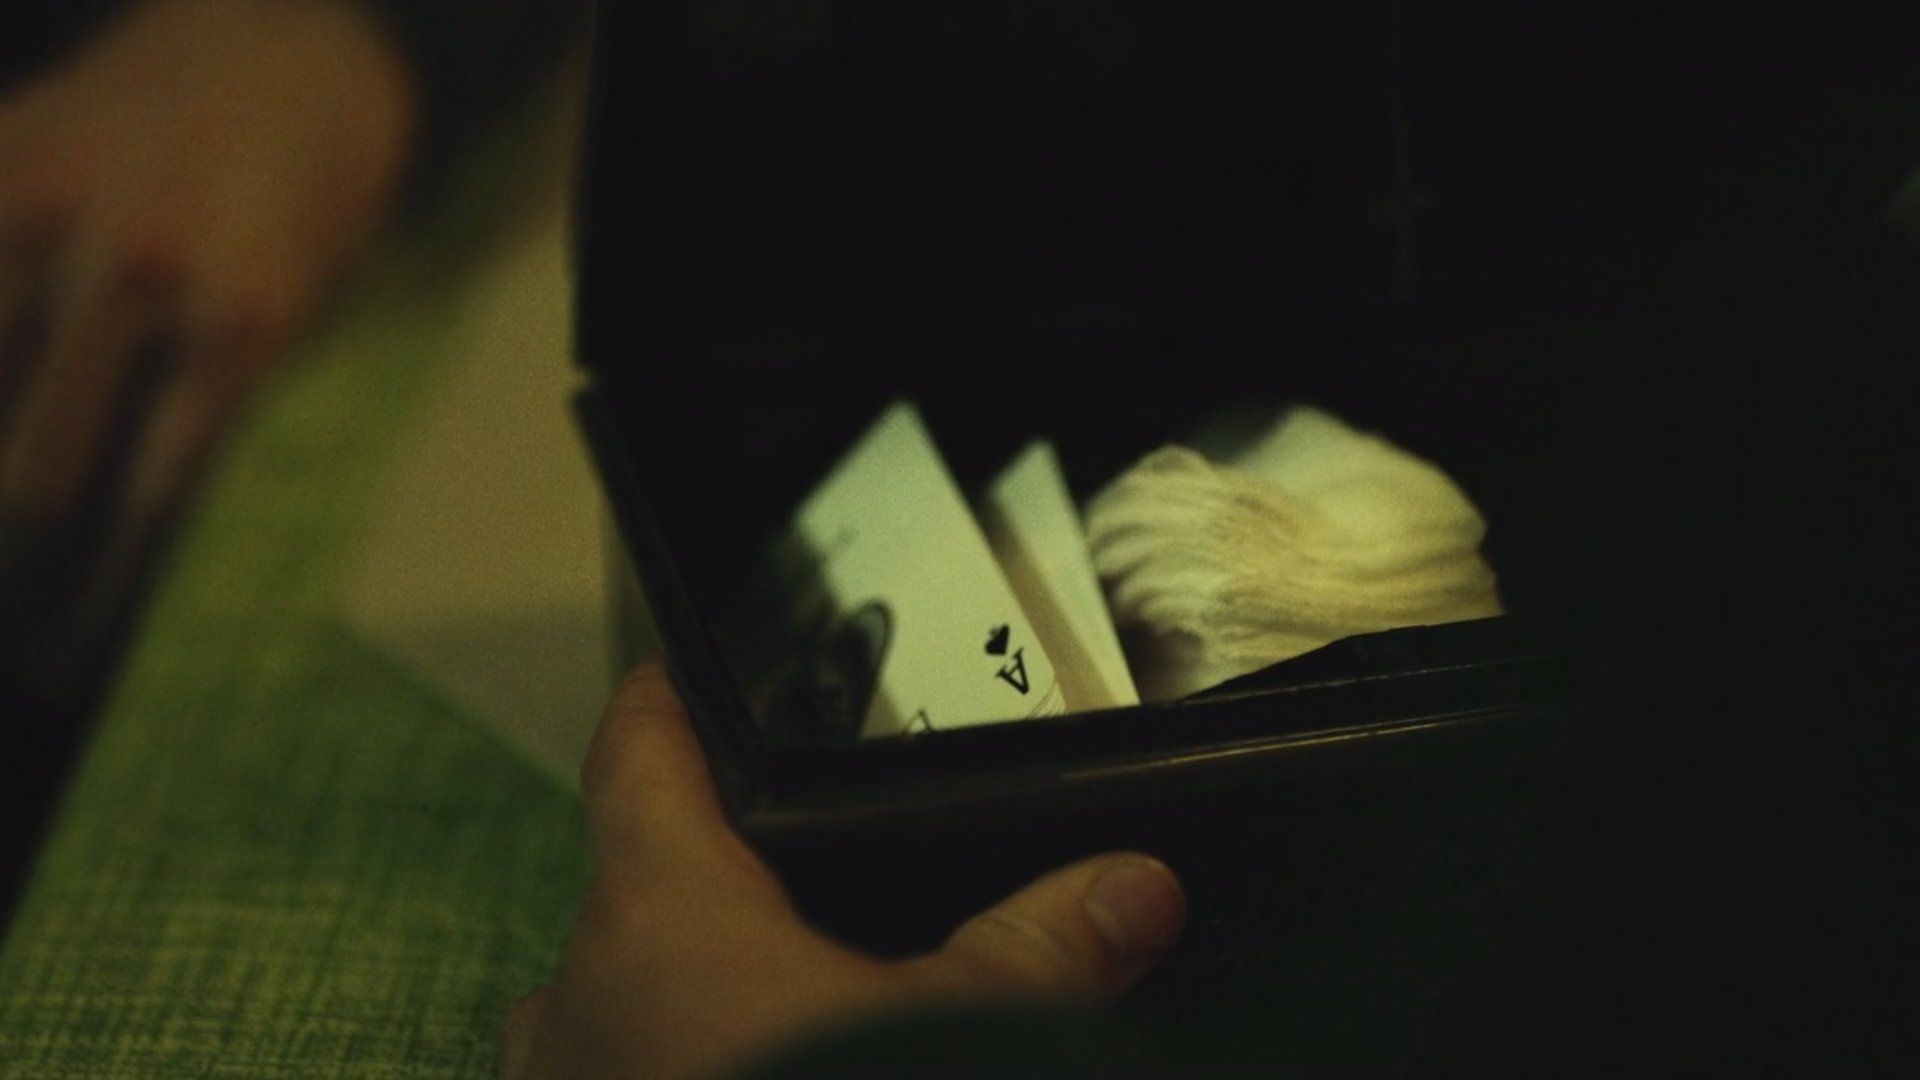 Bullseye easter egg ace of spade aid kit as pique trousse médicale daredevil netflix serie pix geeks 102